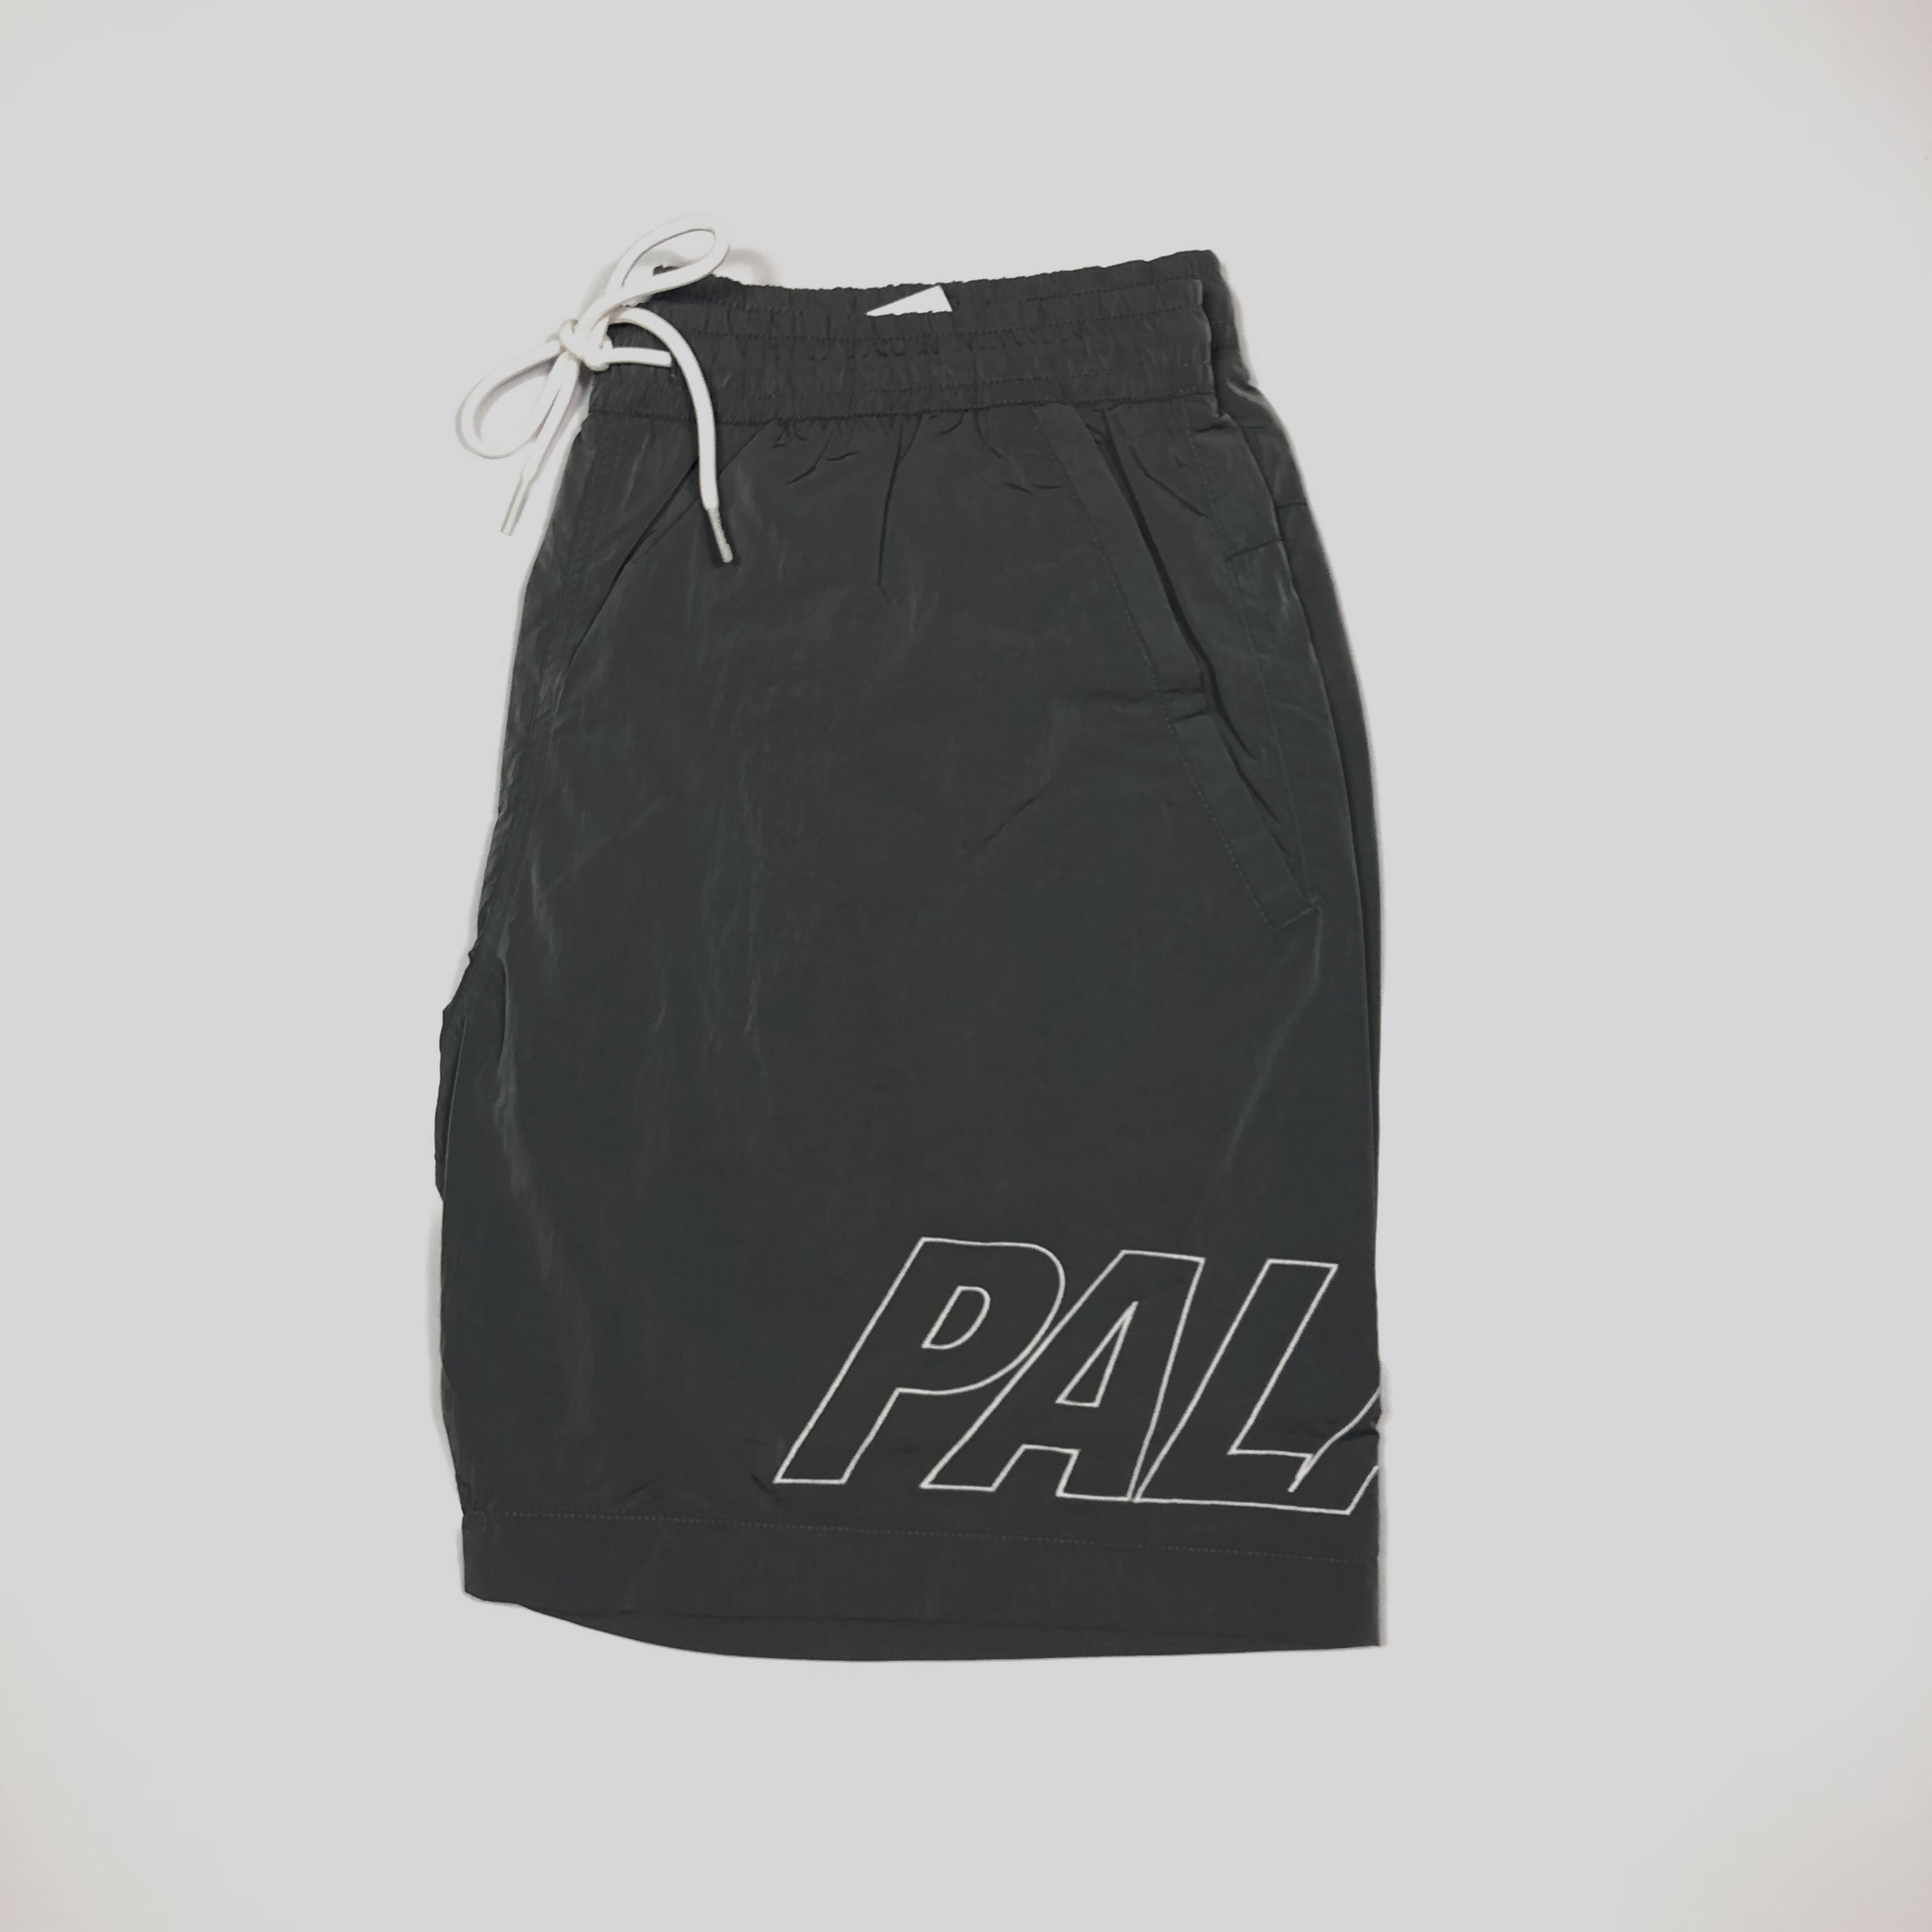 5f83c0d58410 Palace Iri Decent Swimshorts Grey Large New